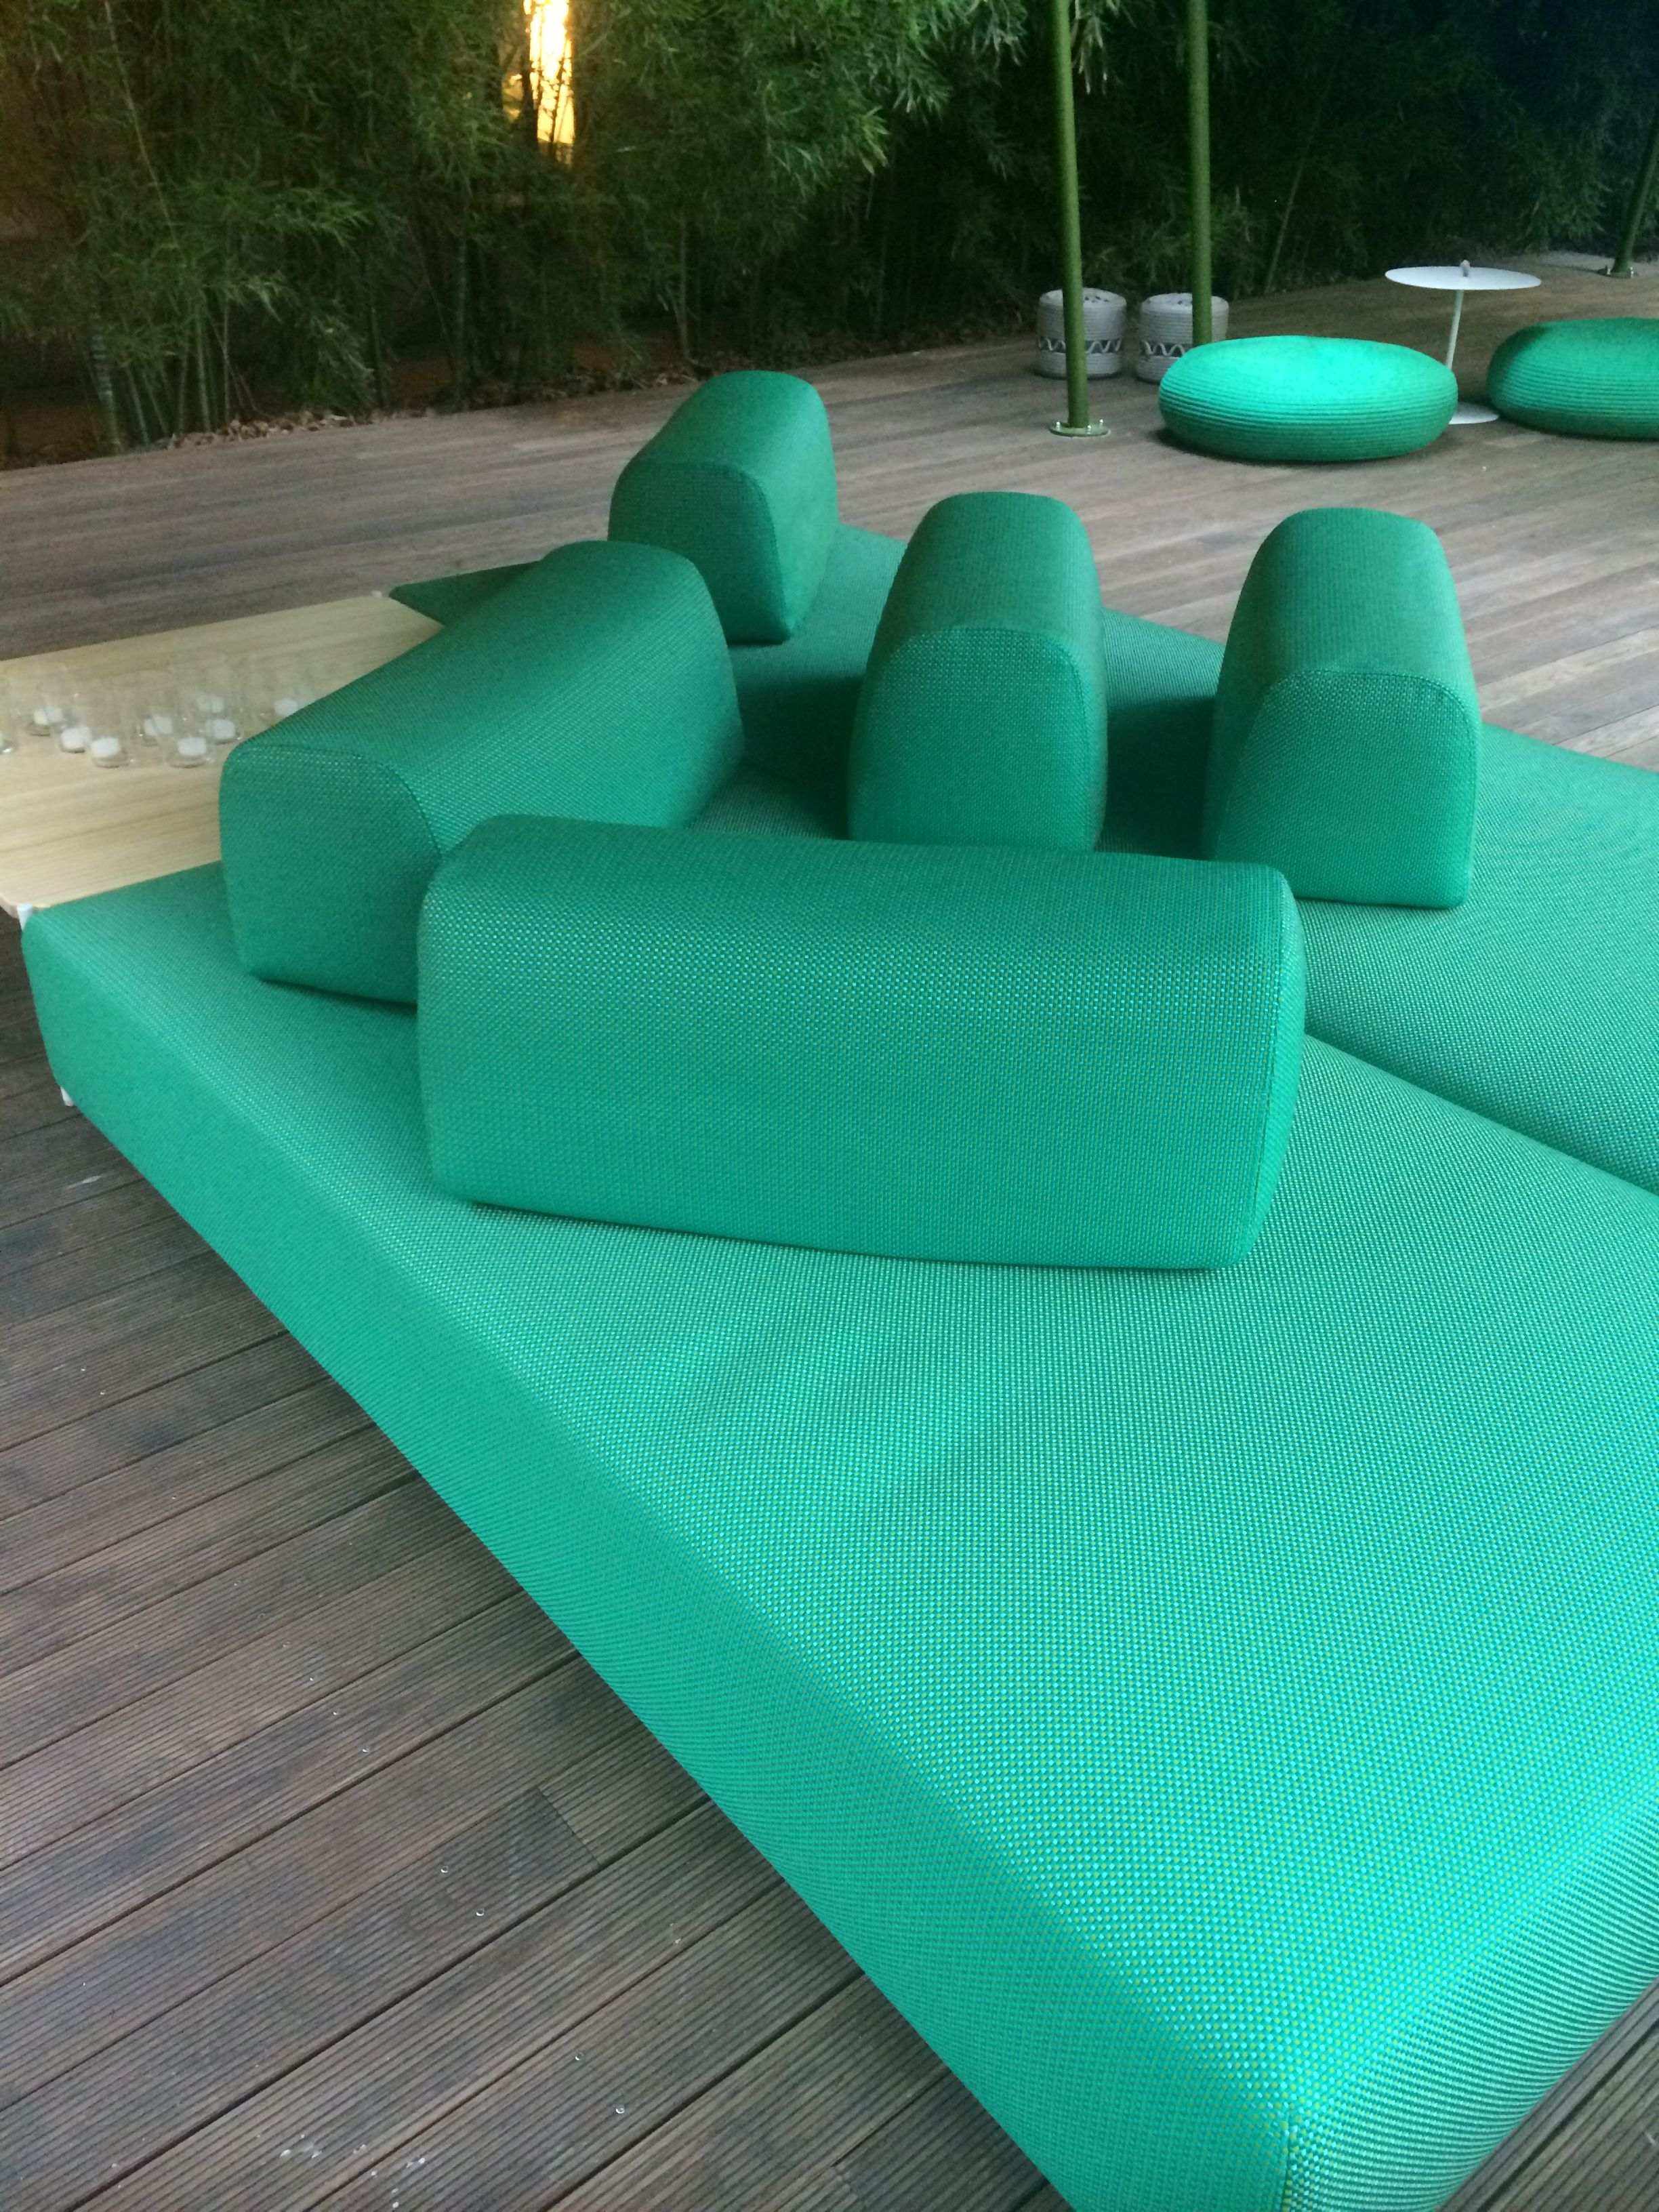 paola #lenti #outdoor #furniture #plants #design #milandesignweek ...